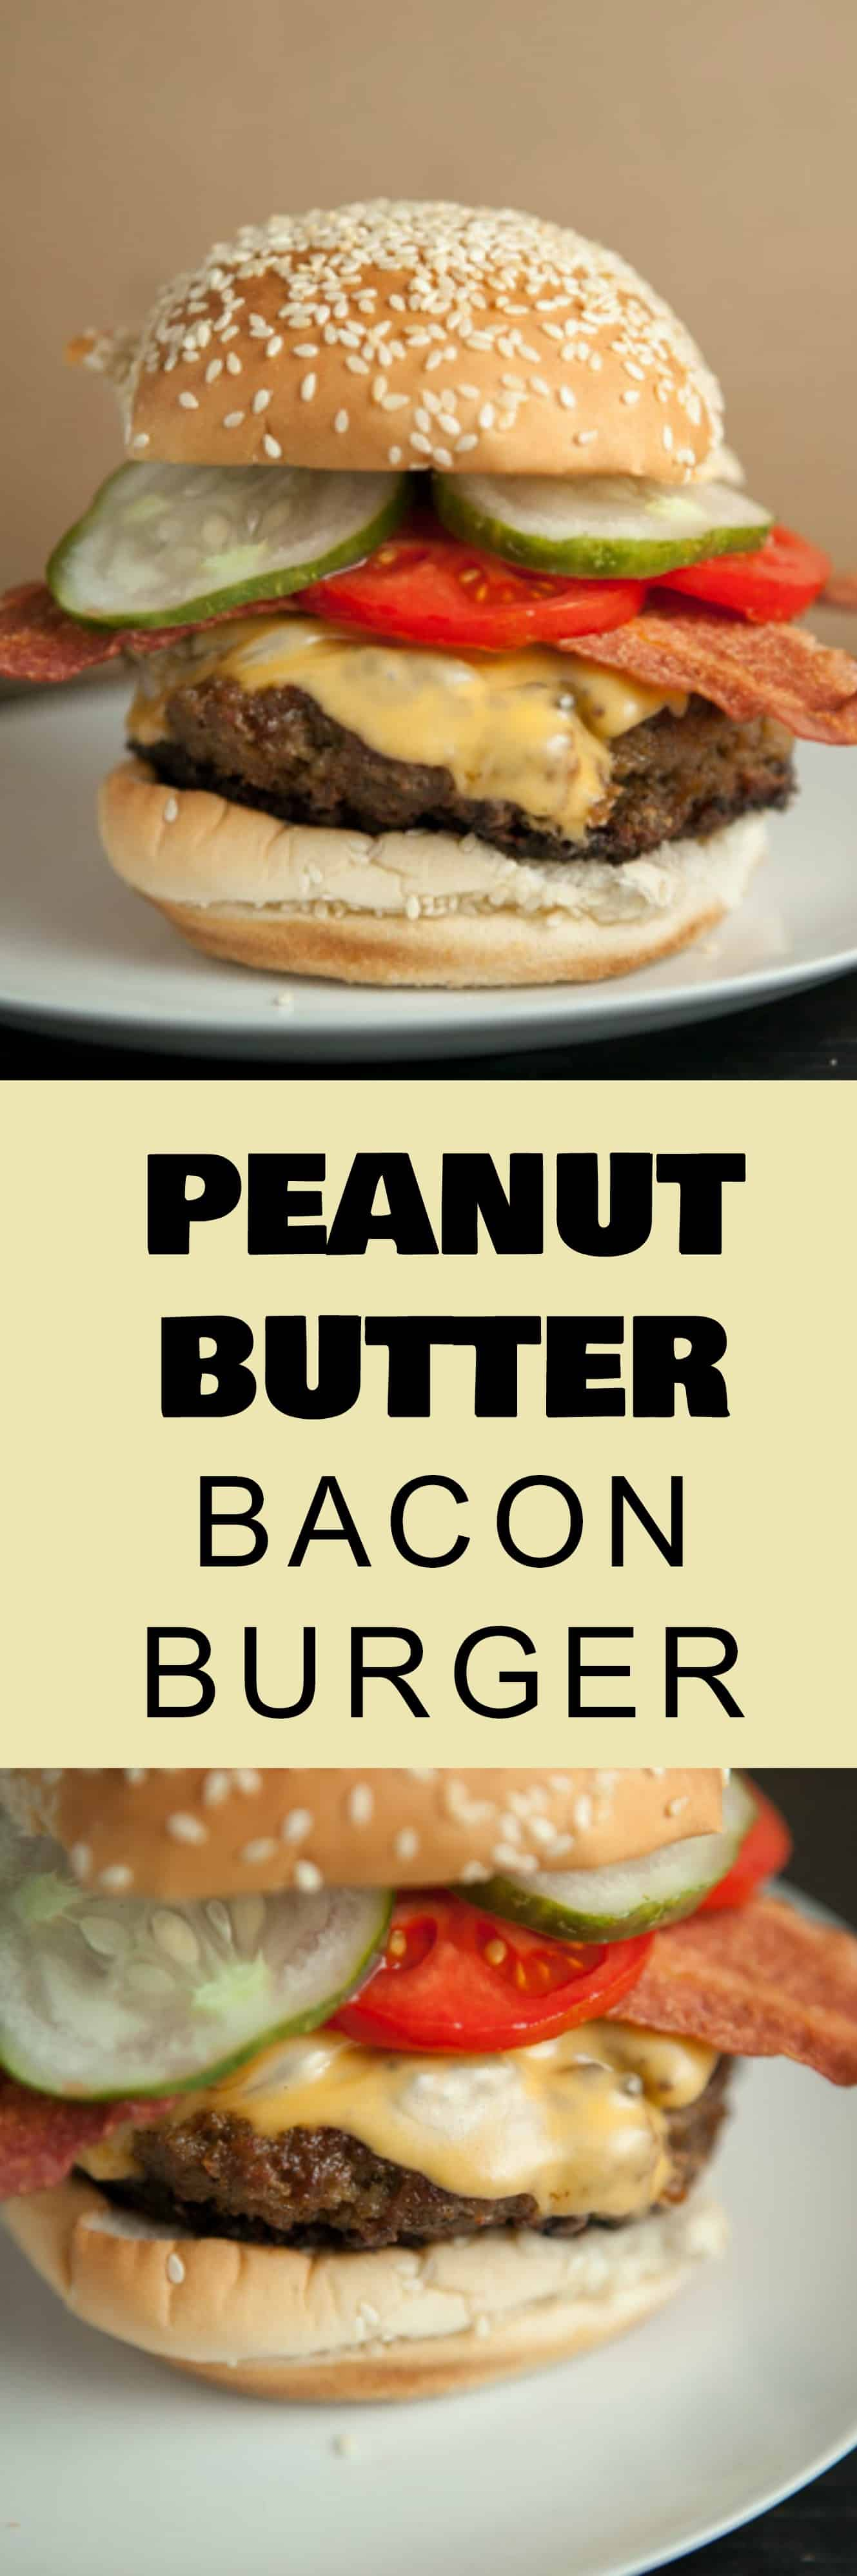 Attention Peanut Butter lovers ! Peanut Butter Bacon Burger recipe!  You are going to love this easy to make healthy turkey burger that's made with peanut butter!